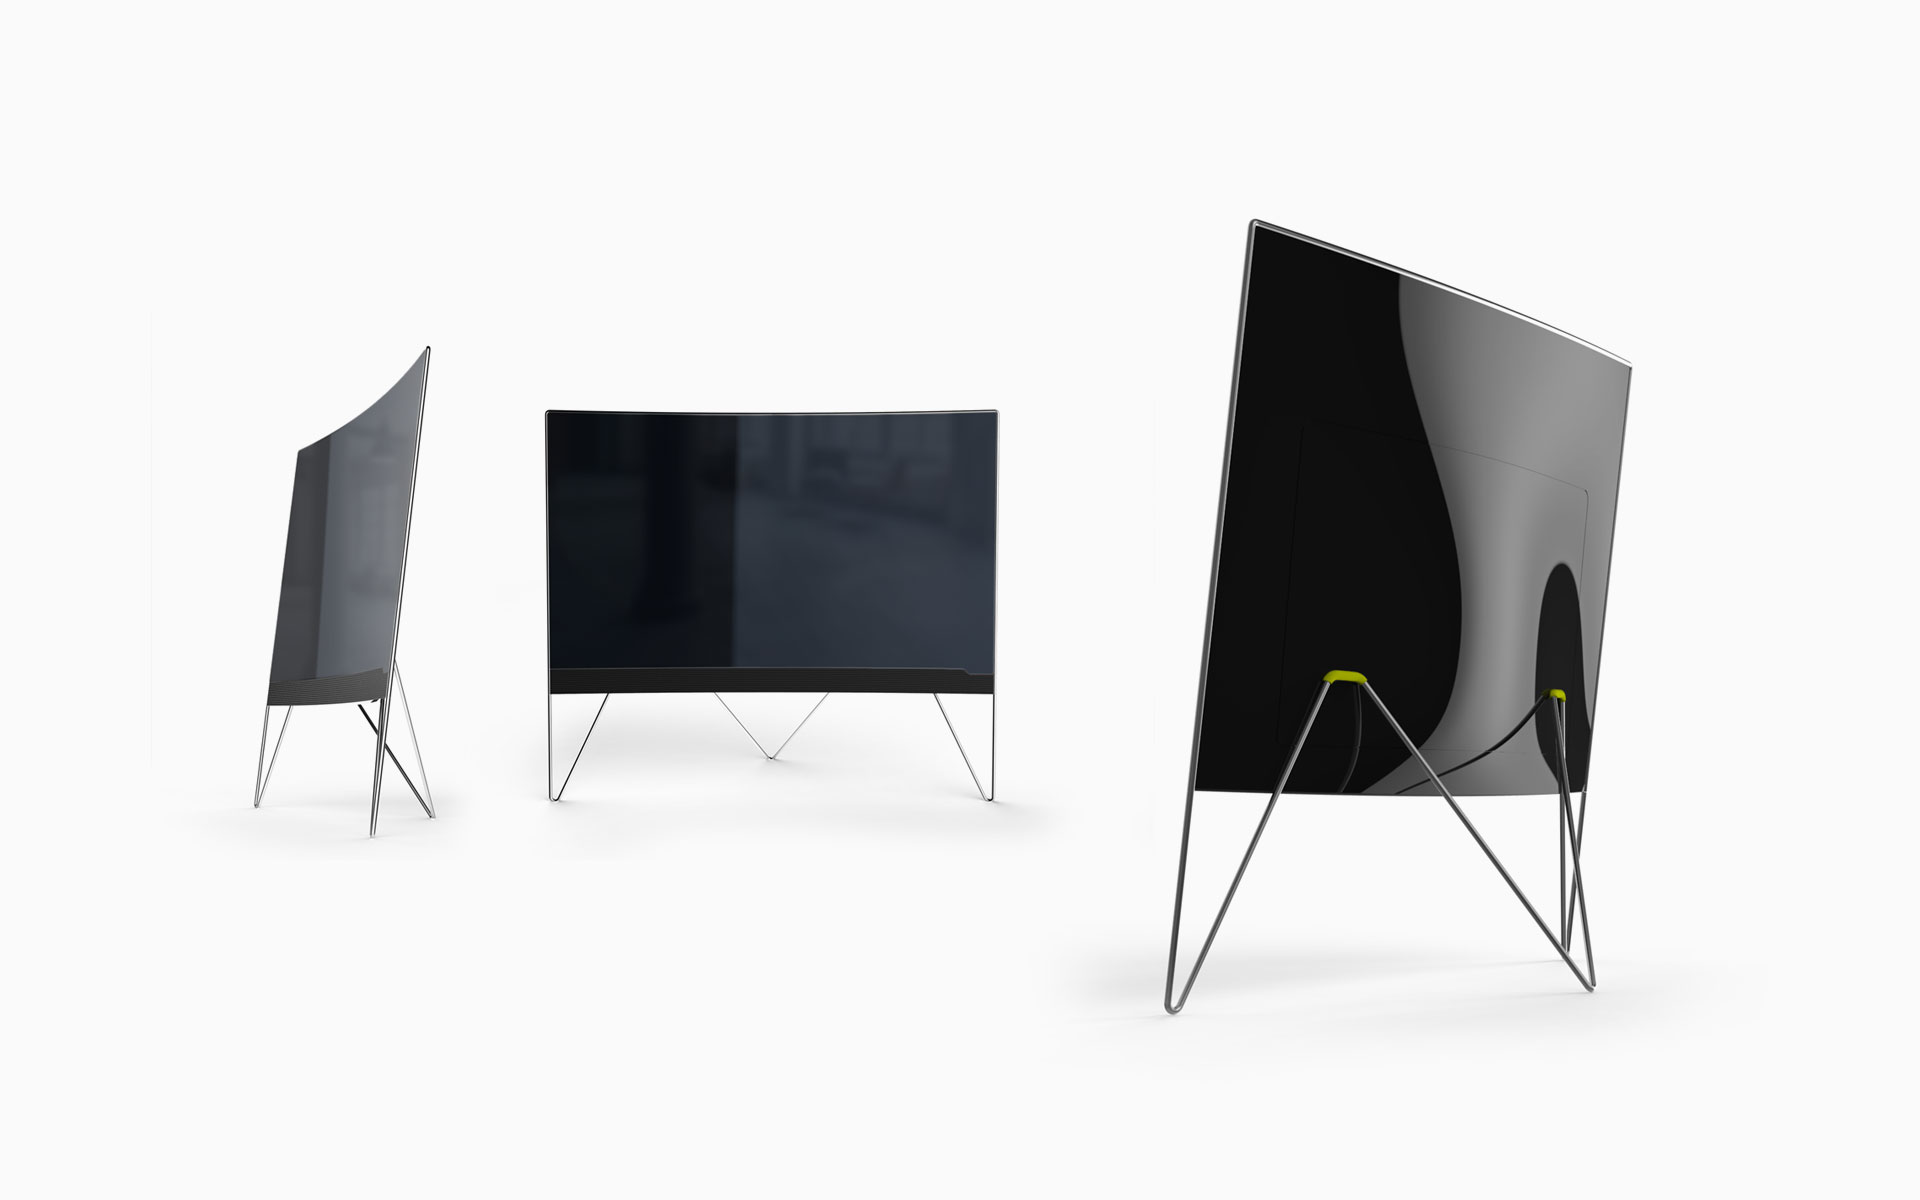 TV productdesign conceptual study